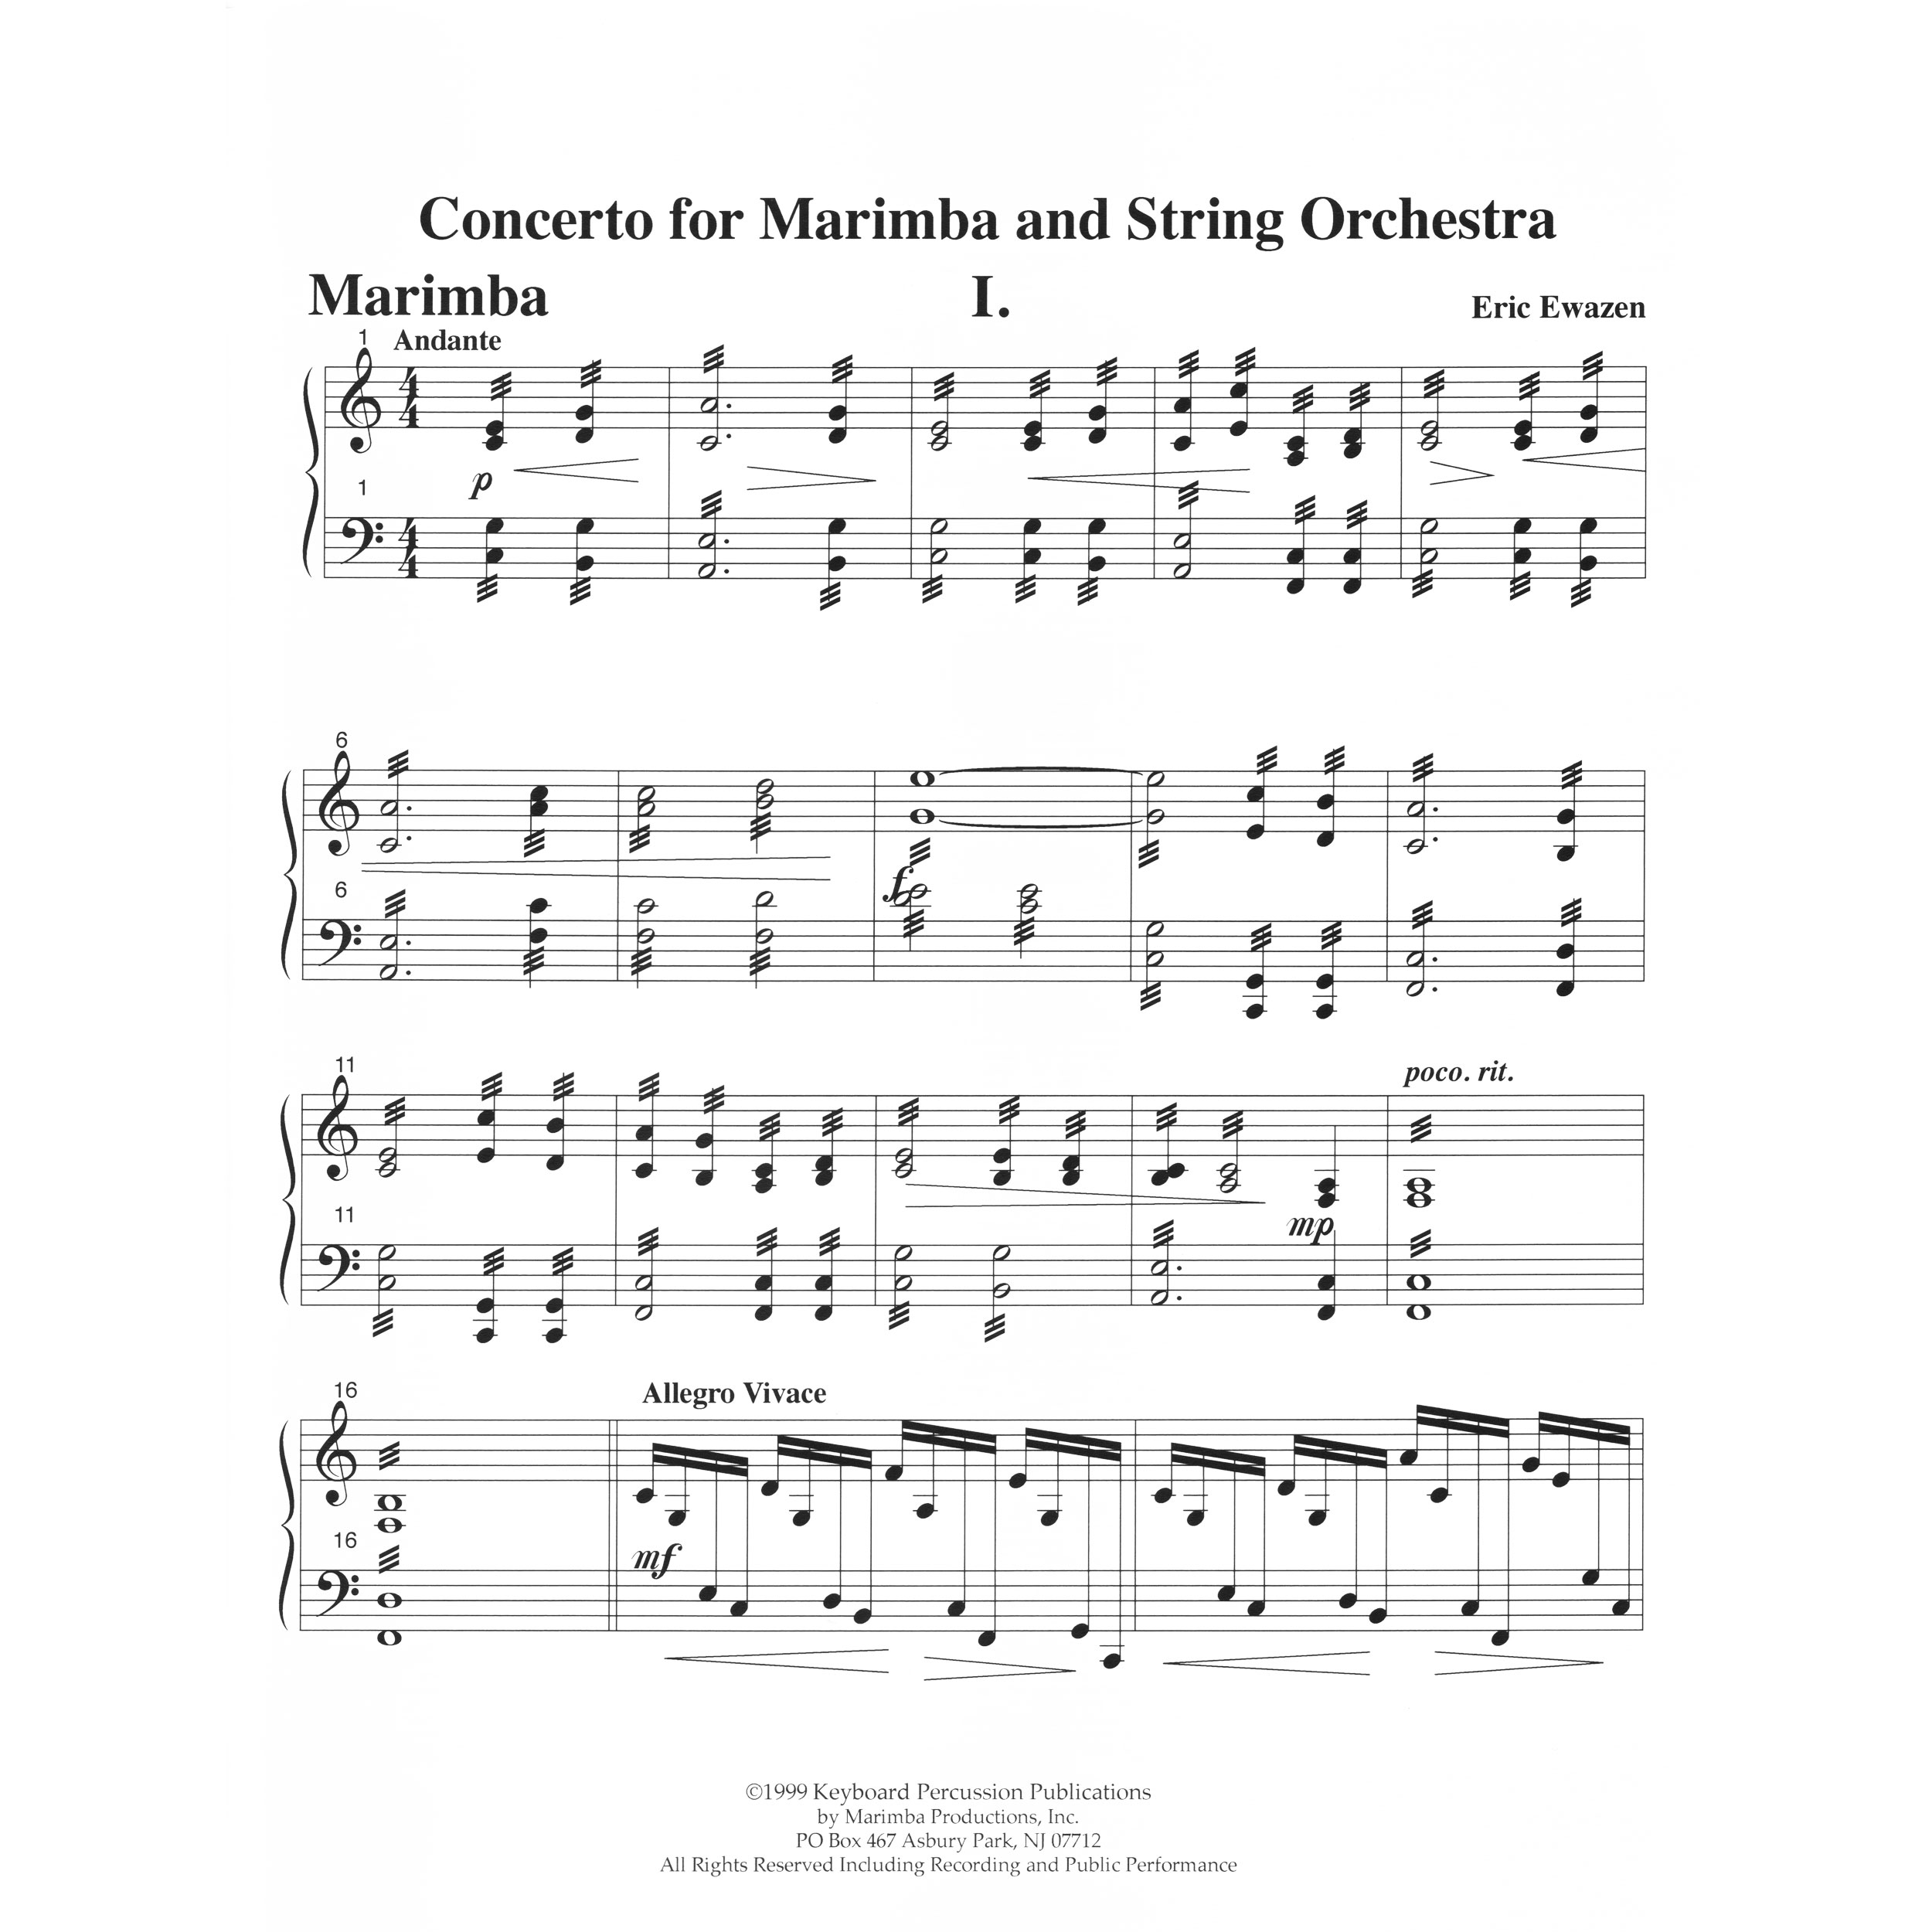 Concerto for Marimba and Orchestra (Piano Reduction) by Eric Ewazen